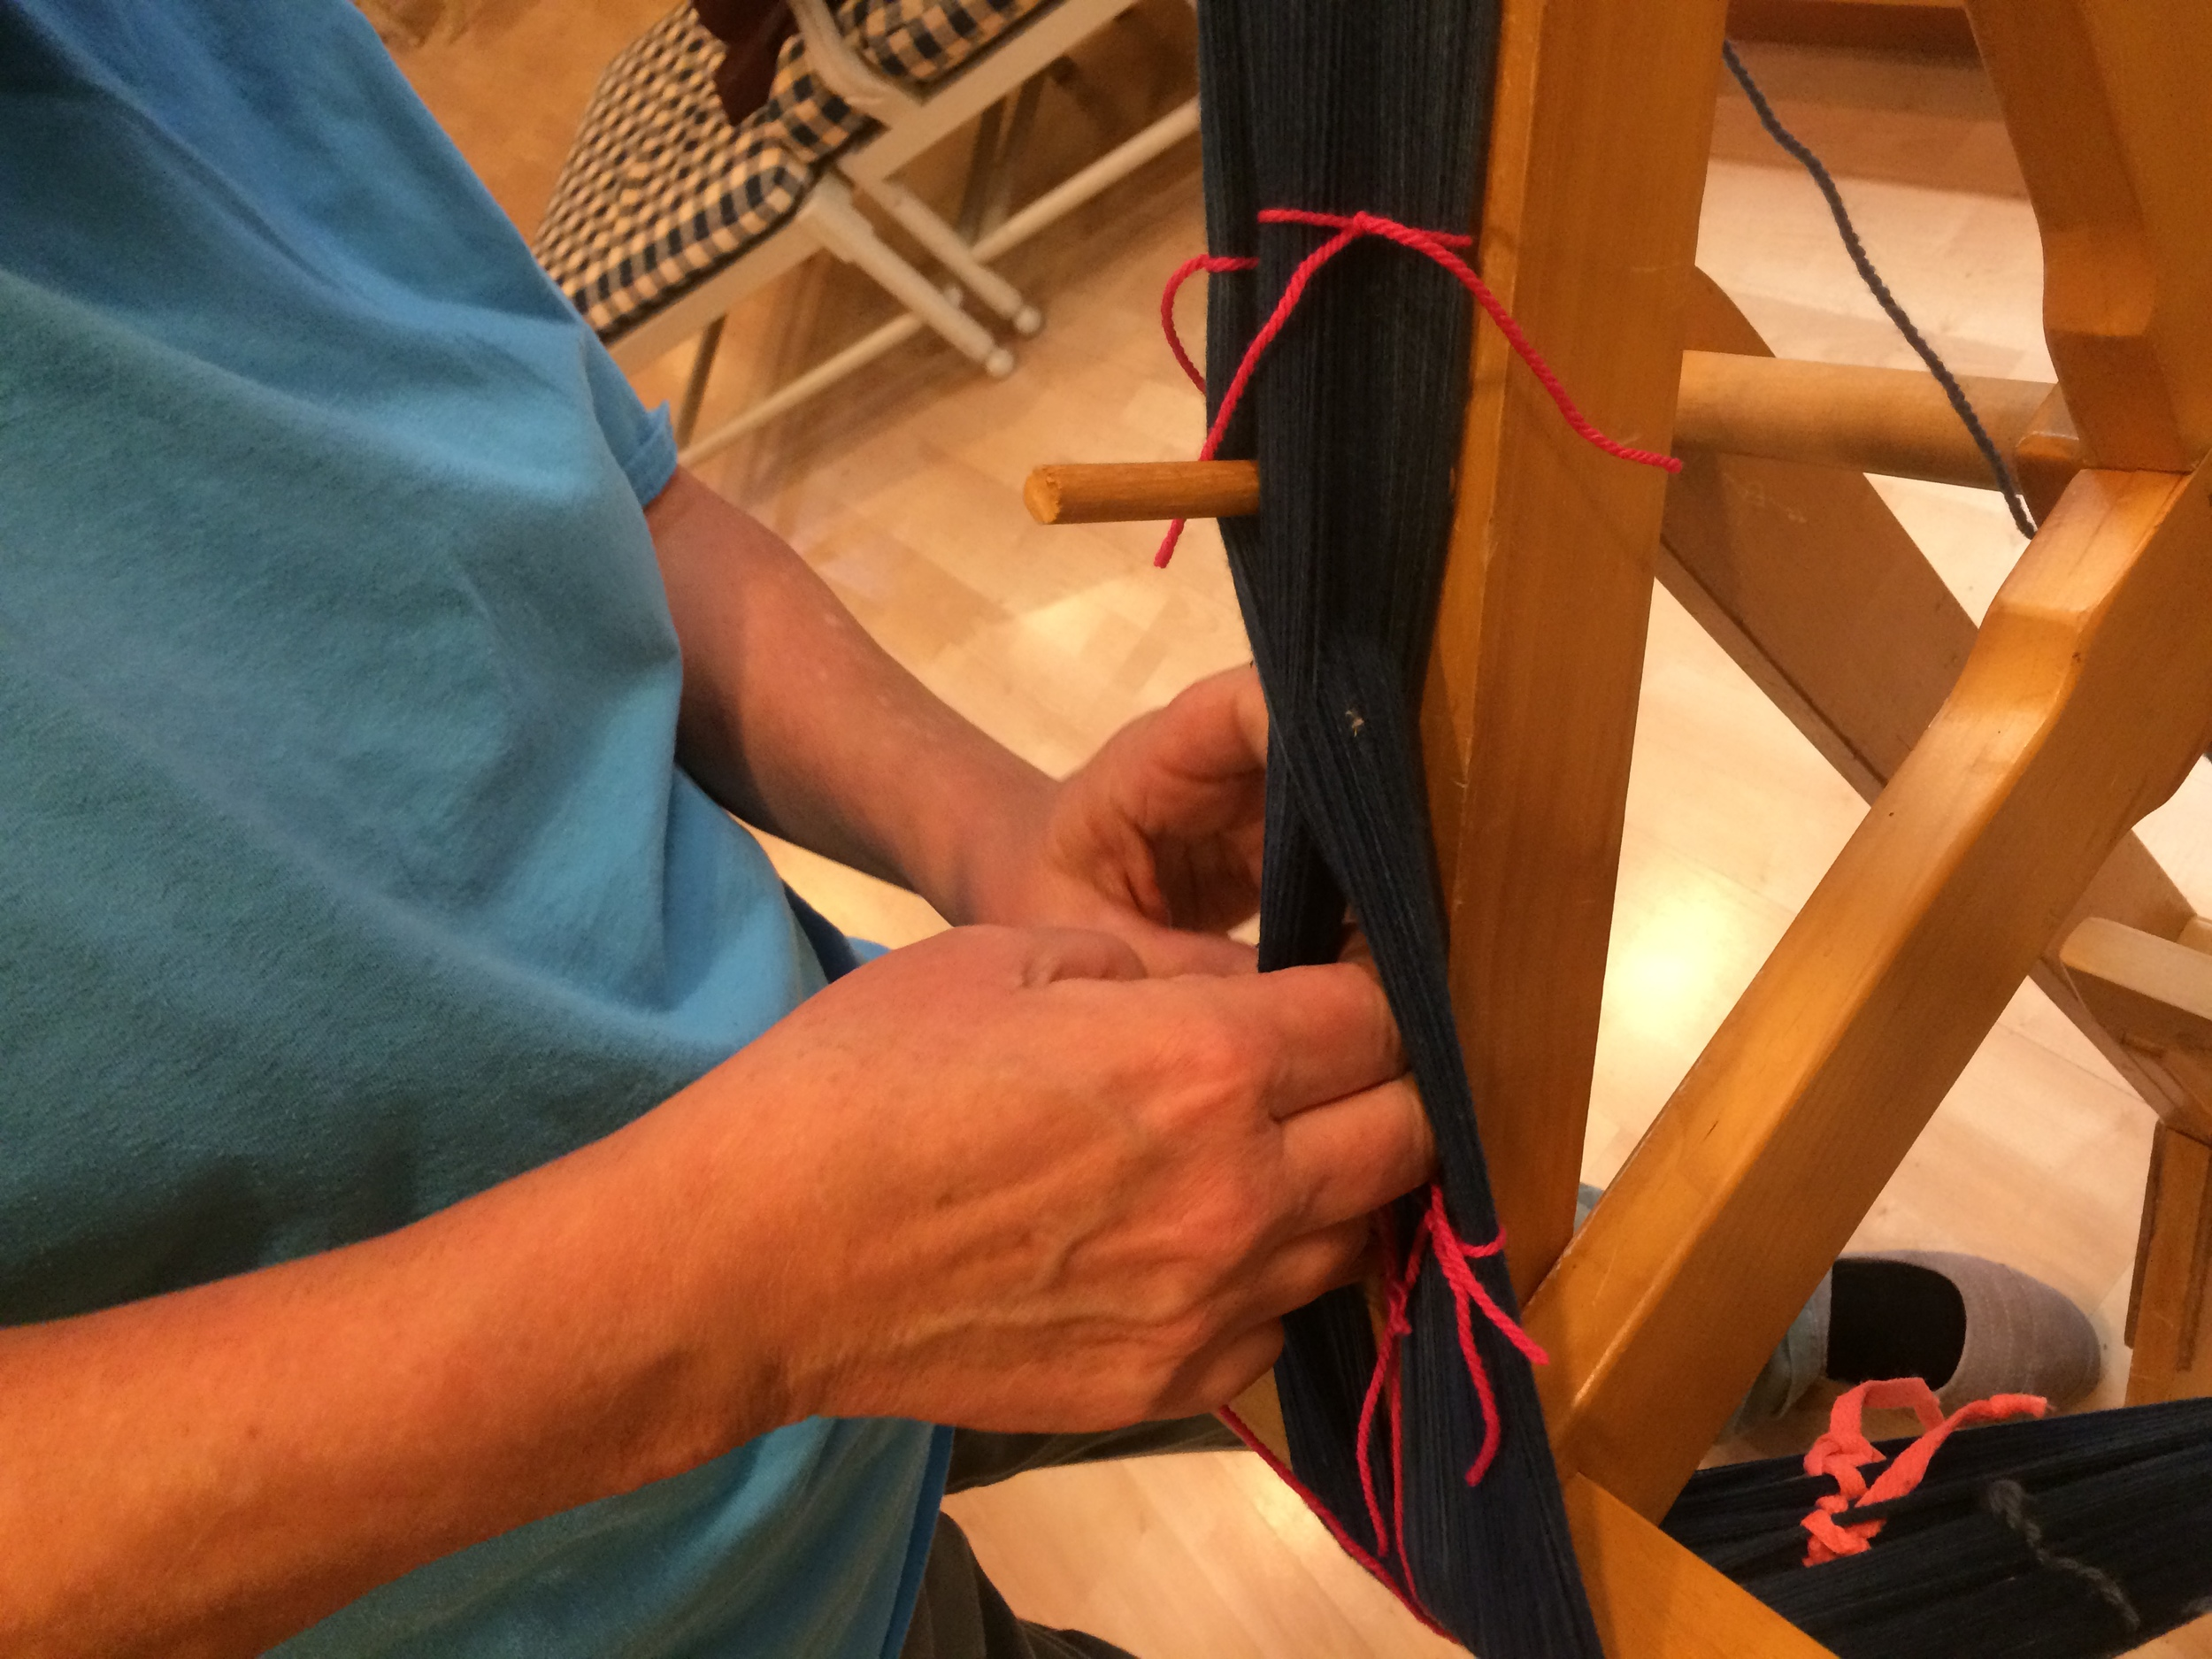 Tying off the yarns on warping frame.